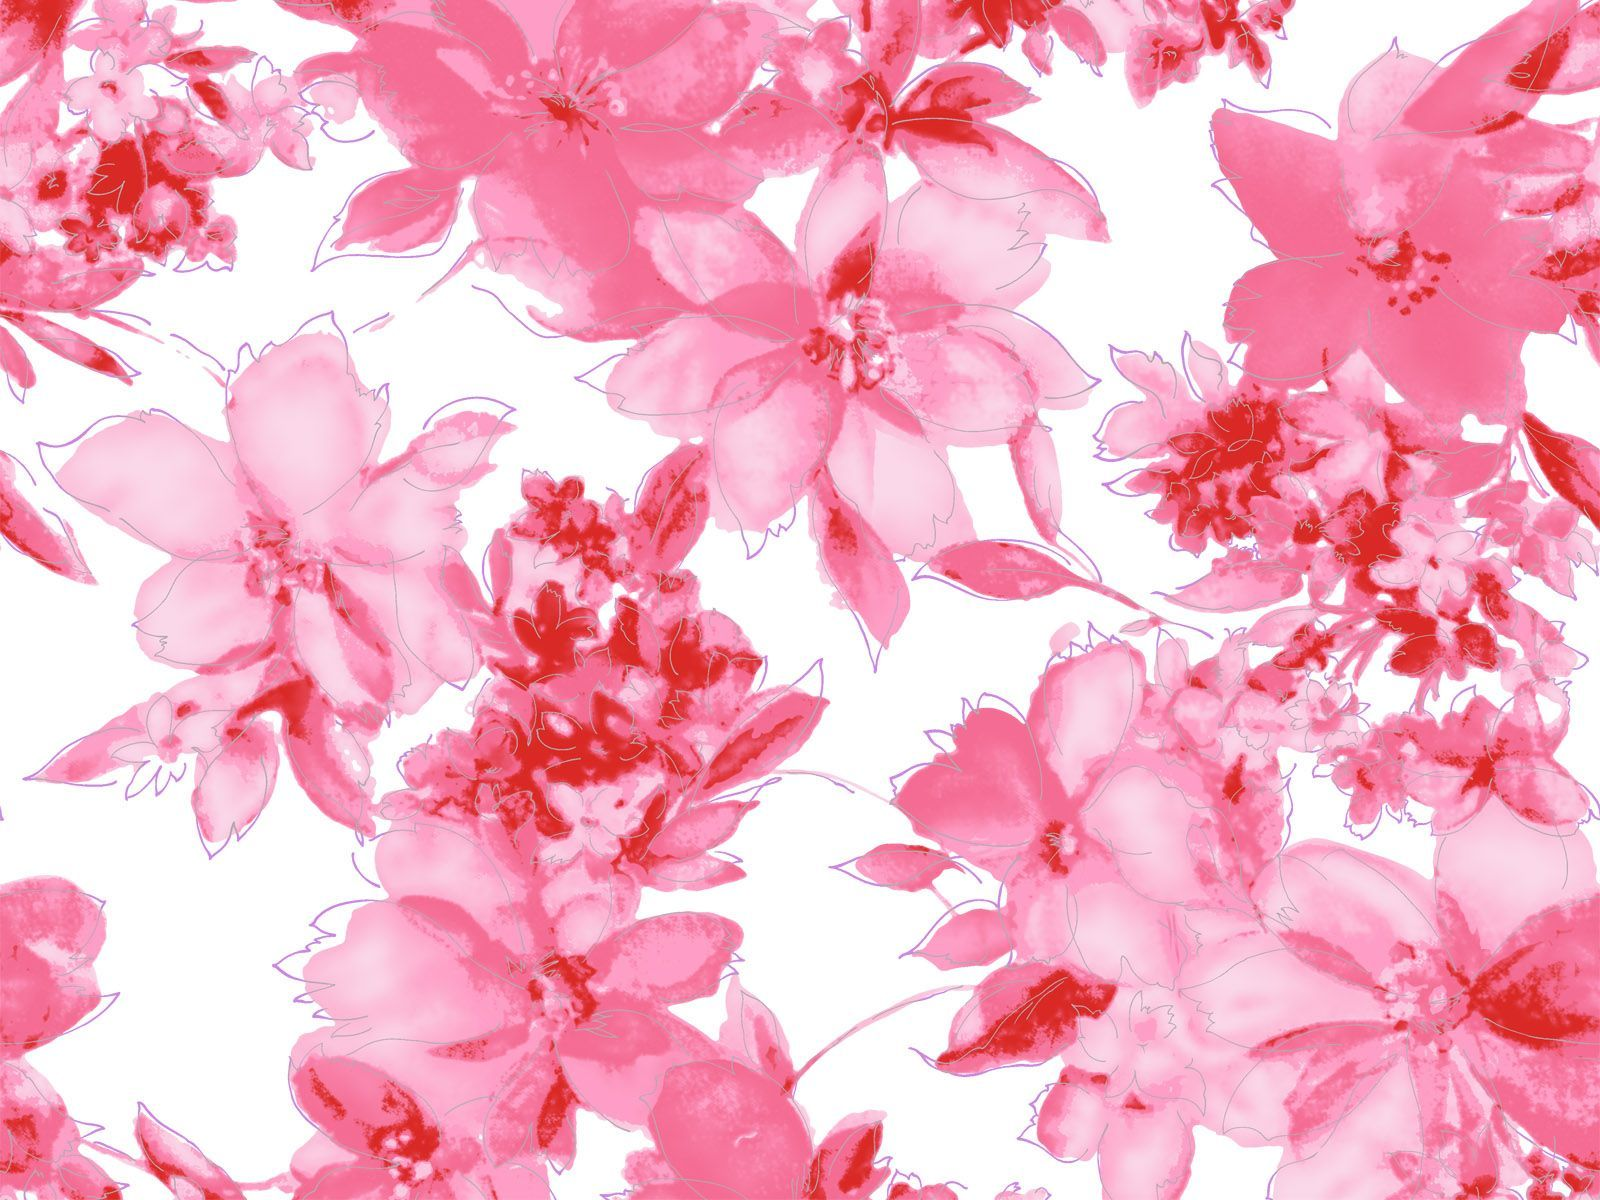 Flowers Hot Roses White Flowers Hearts Pink Flower Wallpapers 1600x1200